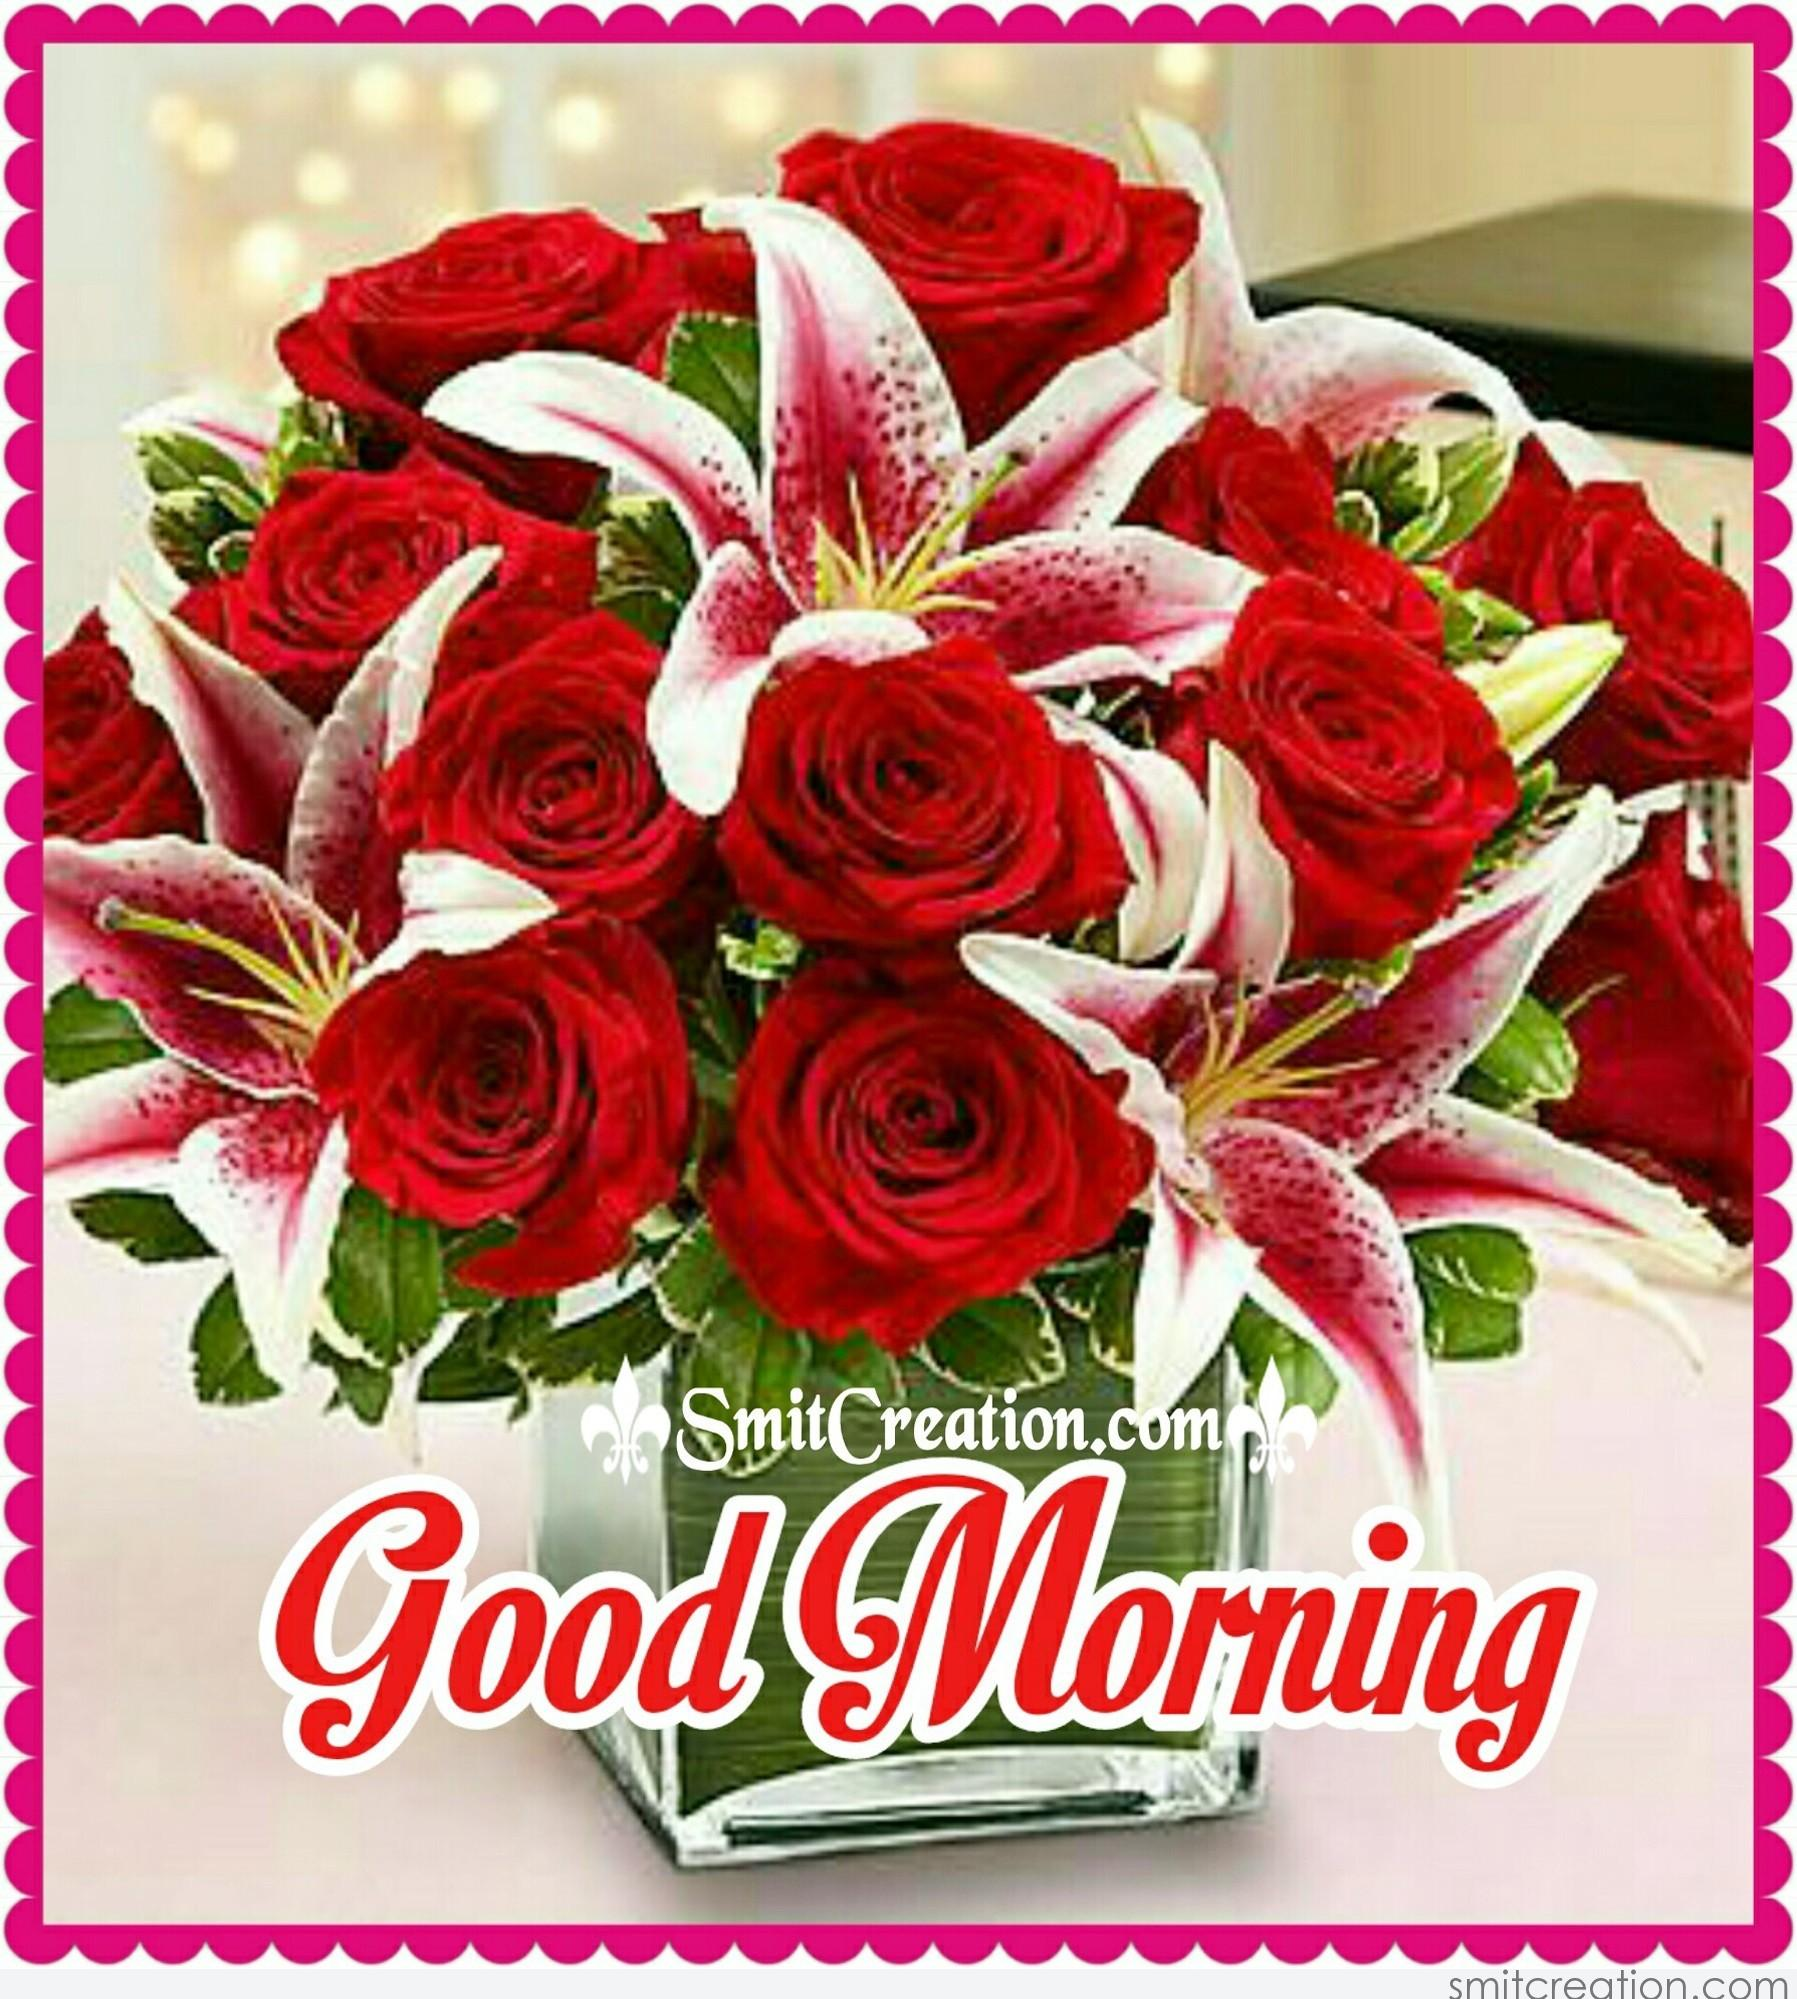 Good morning flower bouquet smitcreation download image izmirmasajfo